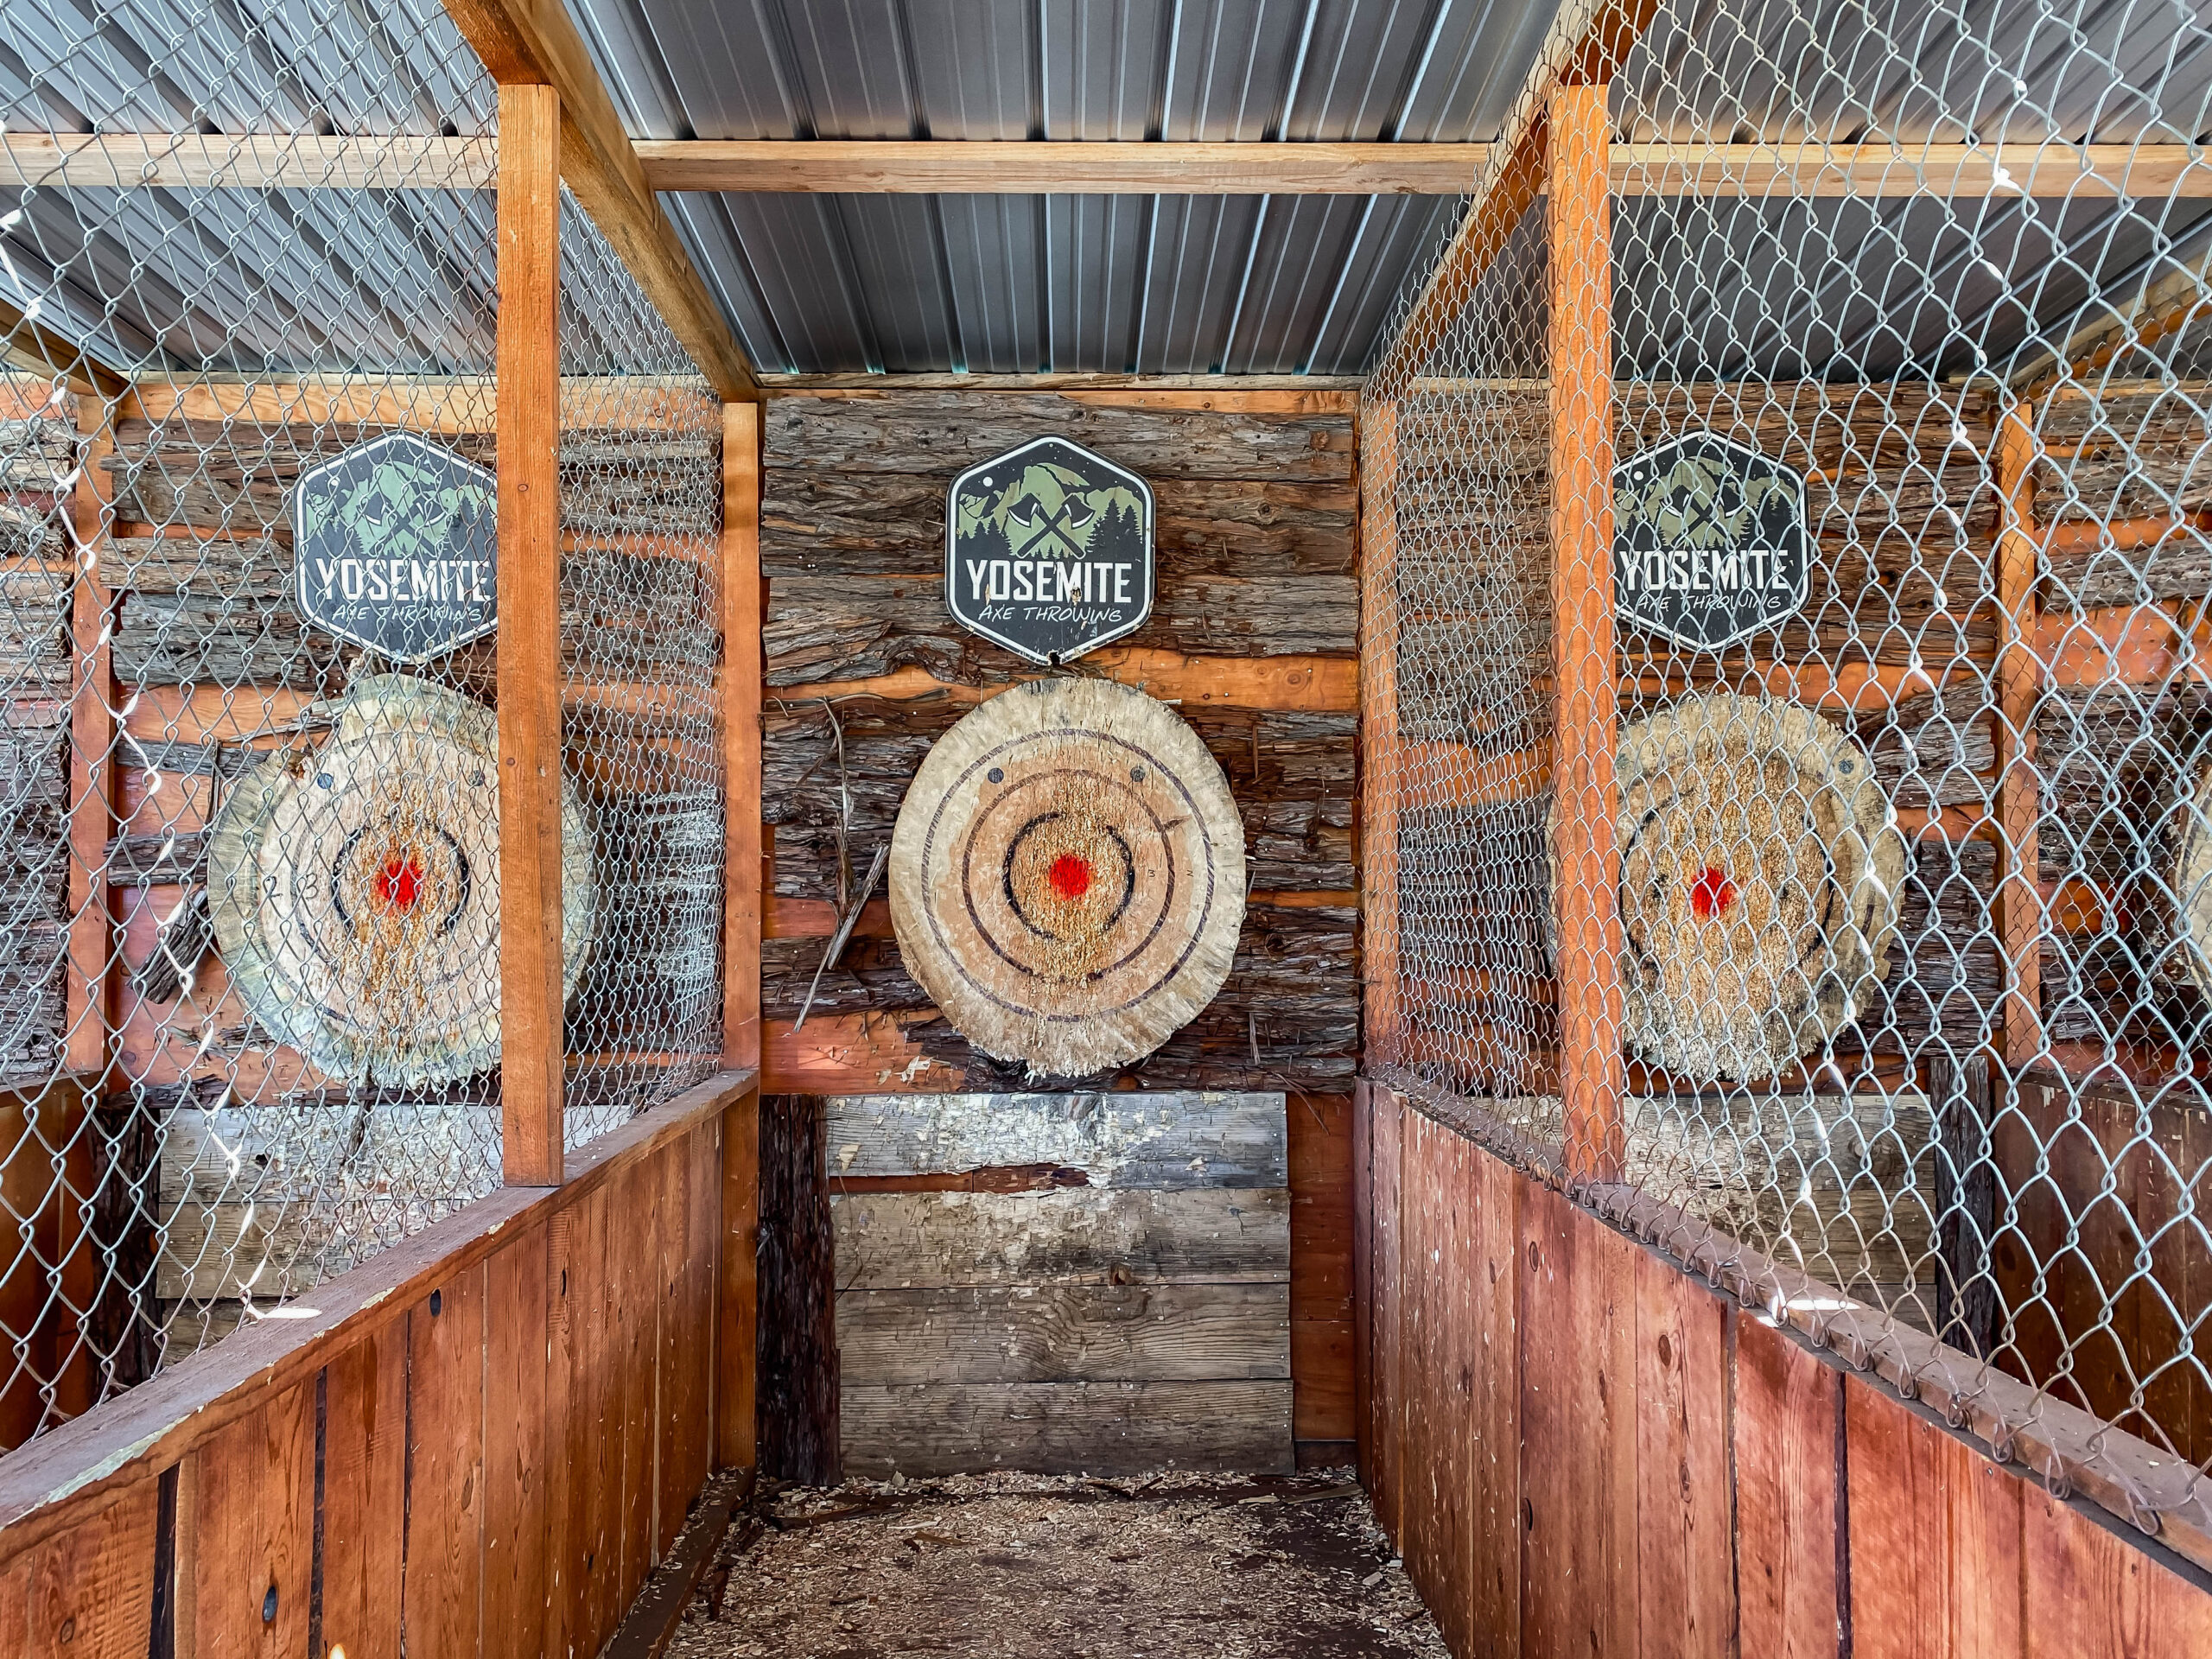 Visiting Bass Lake? Be sure to try axe throwing!